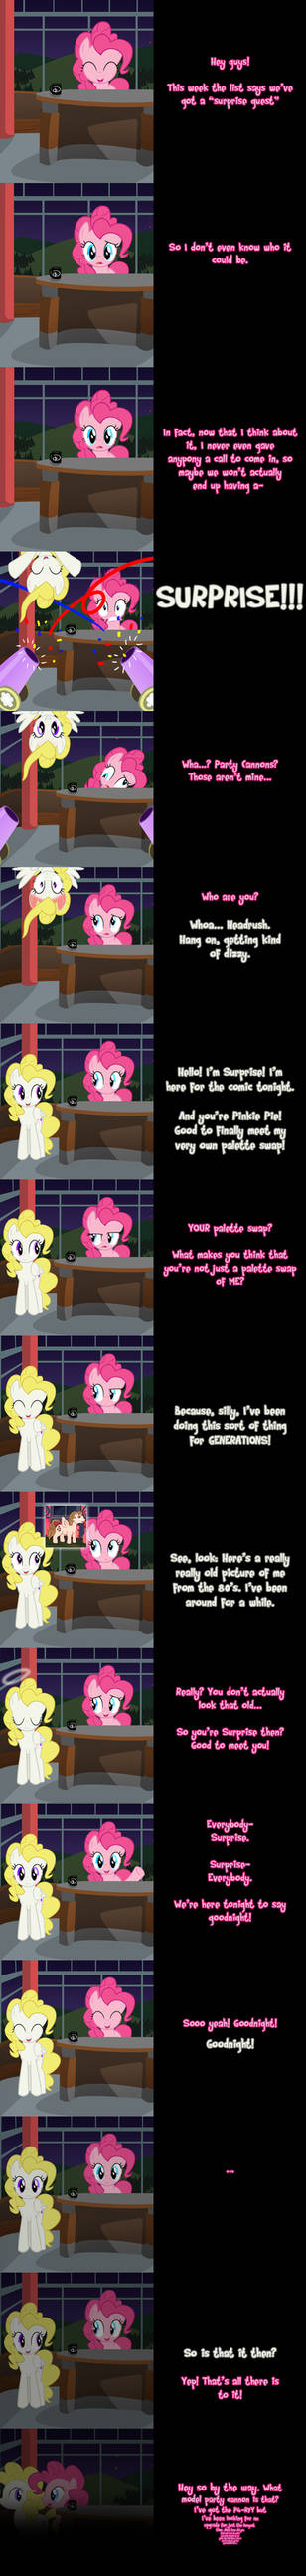 Pinkie Says Goodnight - Surprise Guest